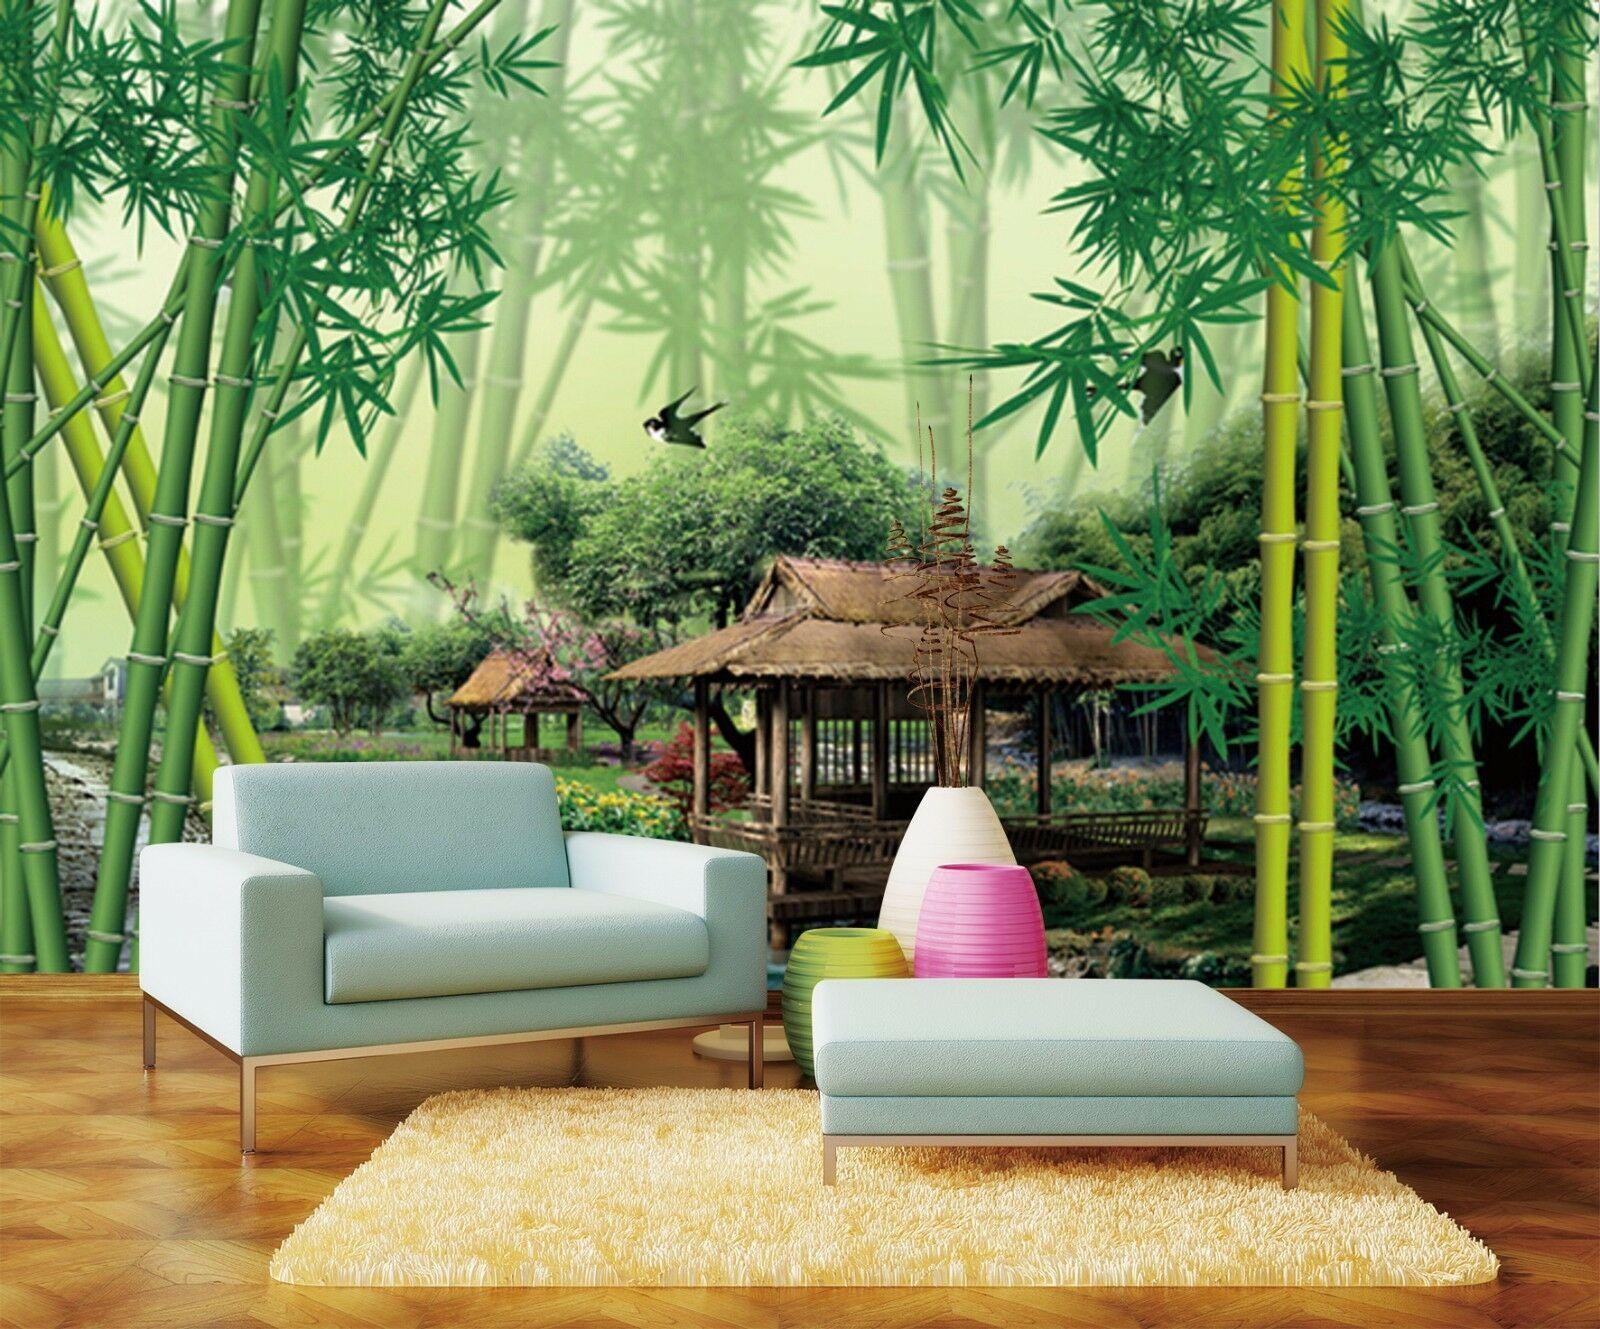 3D Bamboo Forest 1111 Wall Paper Wall Print Decal Wall Deco Indoor AJ Wall Paper